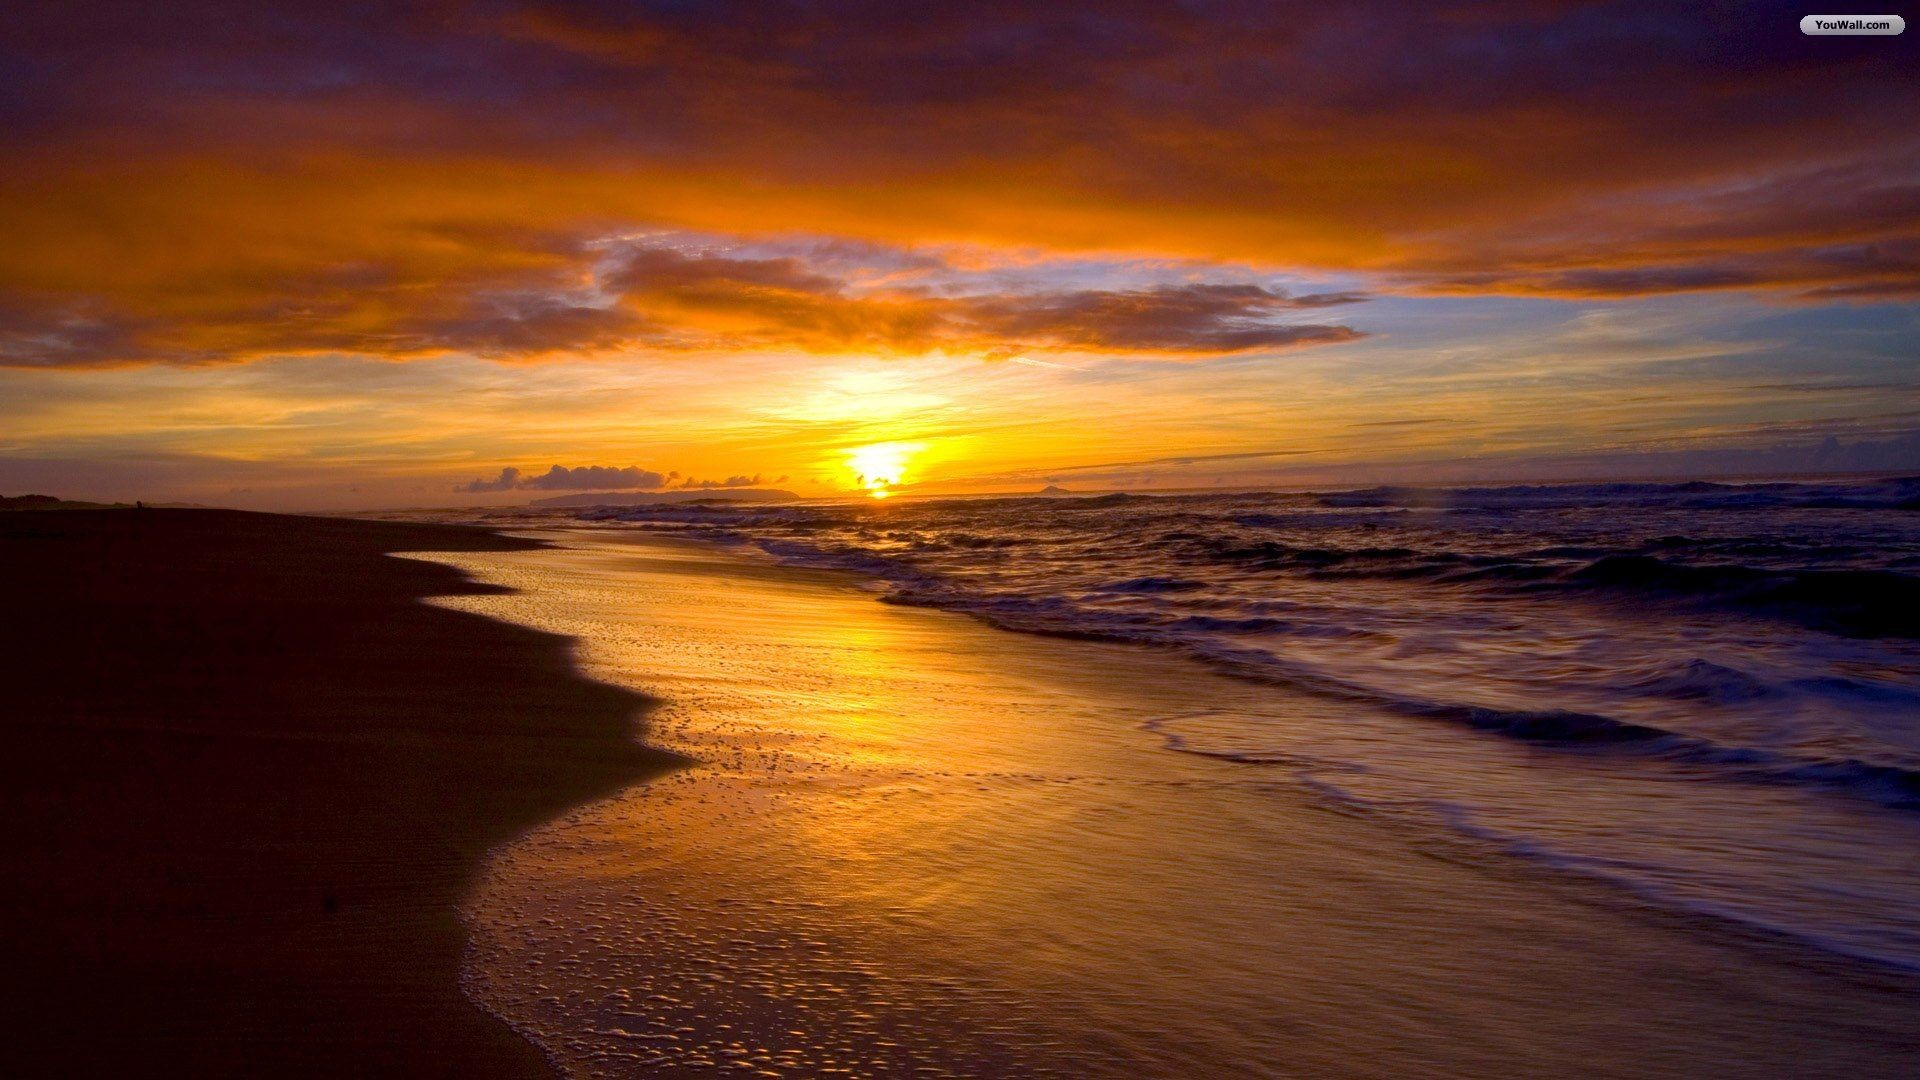 Res: 1920x1080, Beach Sunset Wallpaper Tumblr Hd Pictures 4 HD Wallpapers